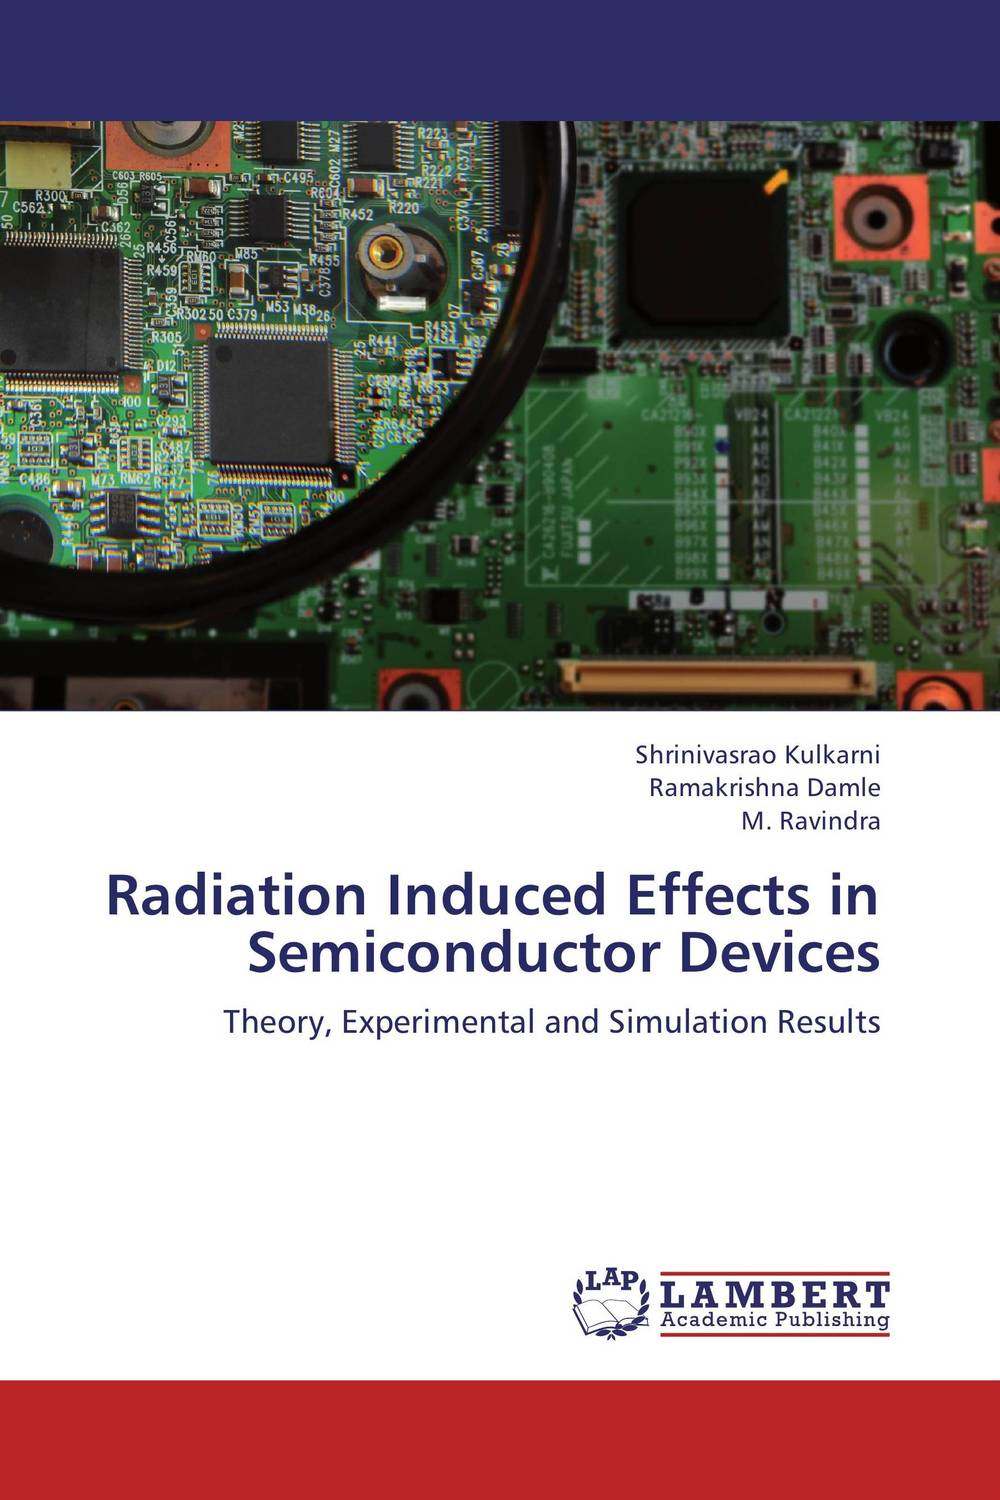 цена на Radiation Induced Effects in Semiconductor Devices